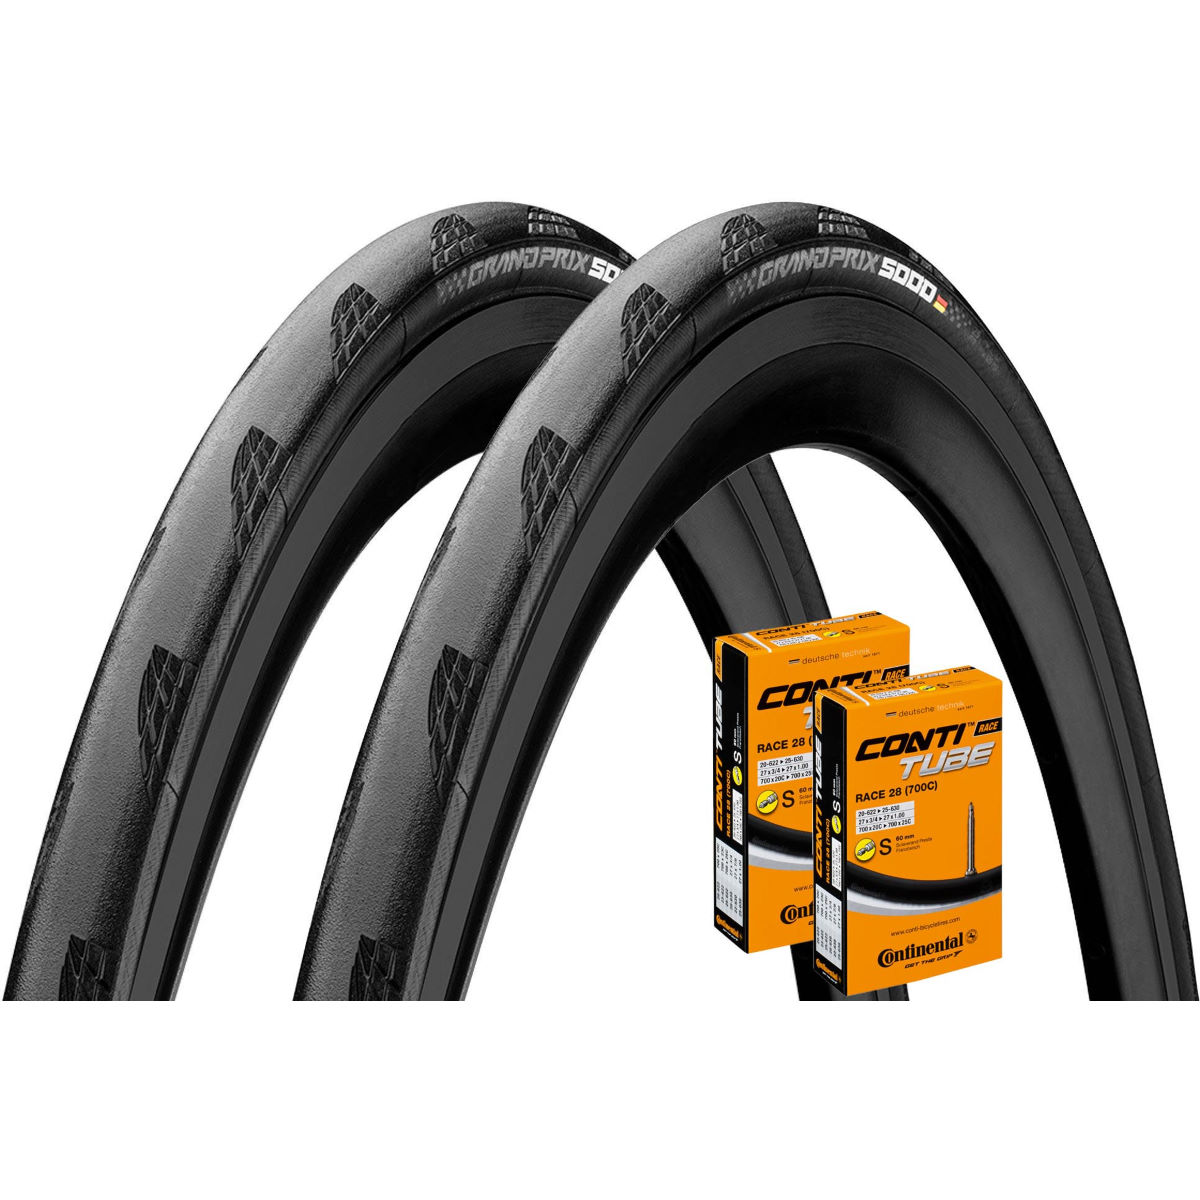 Continental Continental Grand Prix 5000 25c Tyres + Tubes - Pair   Tyres